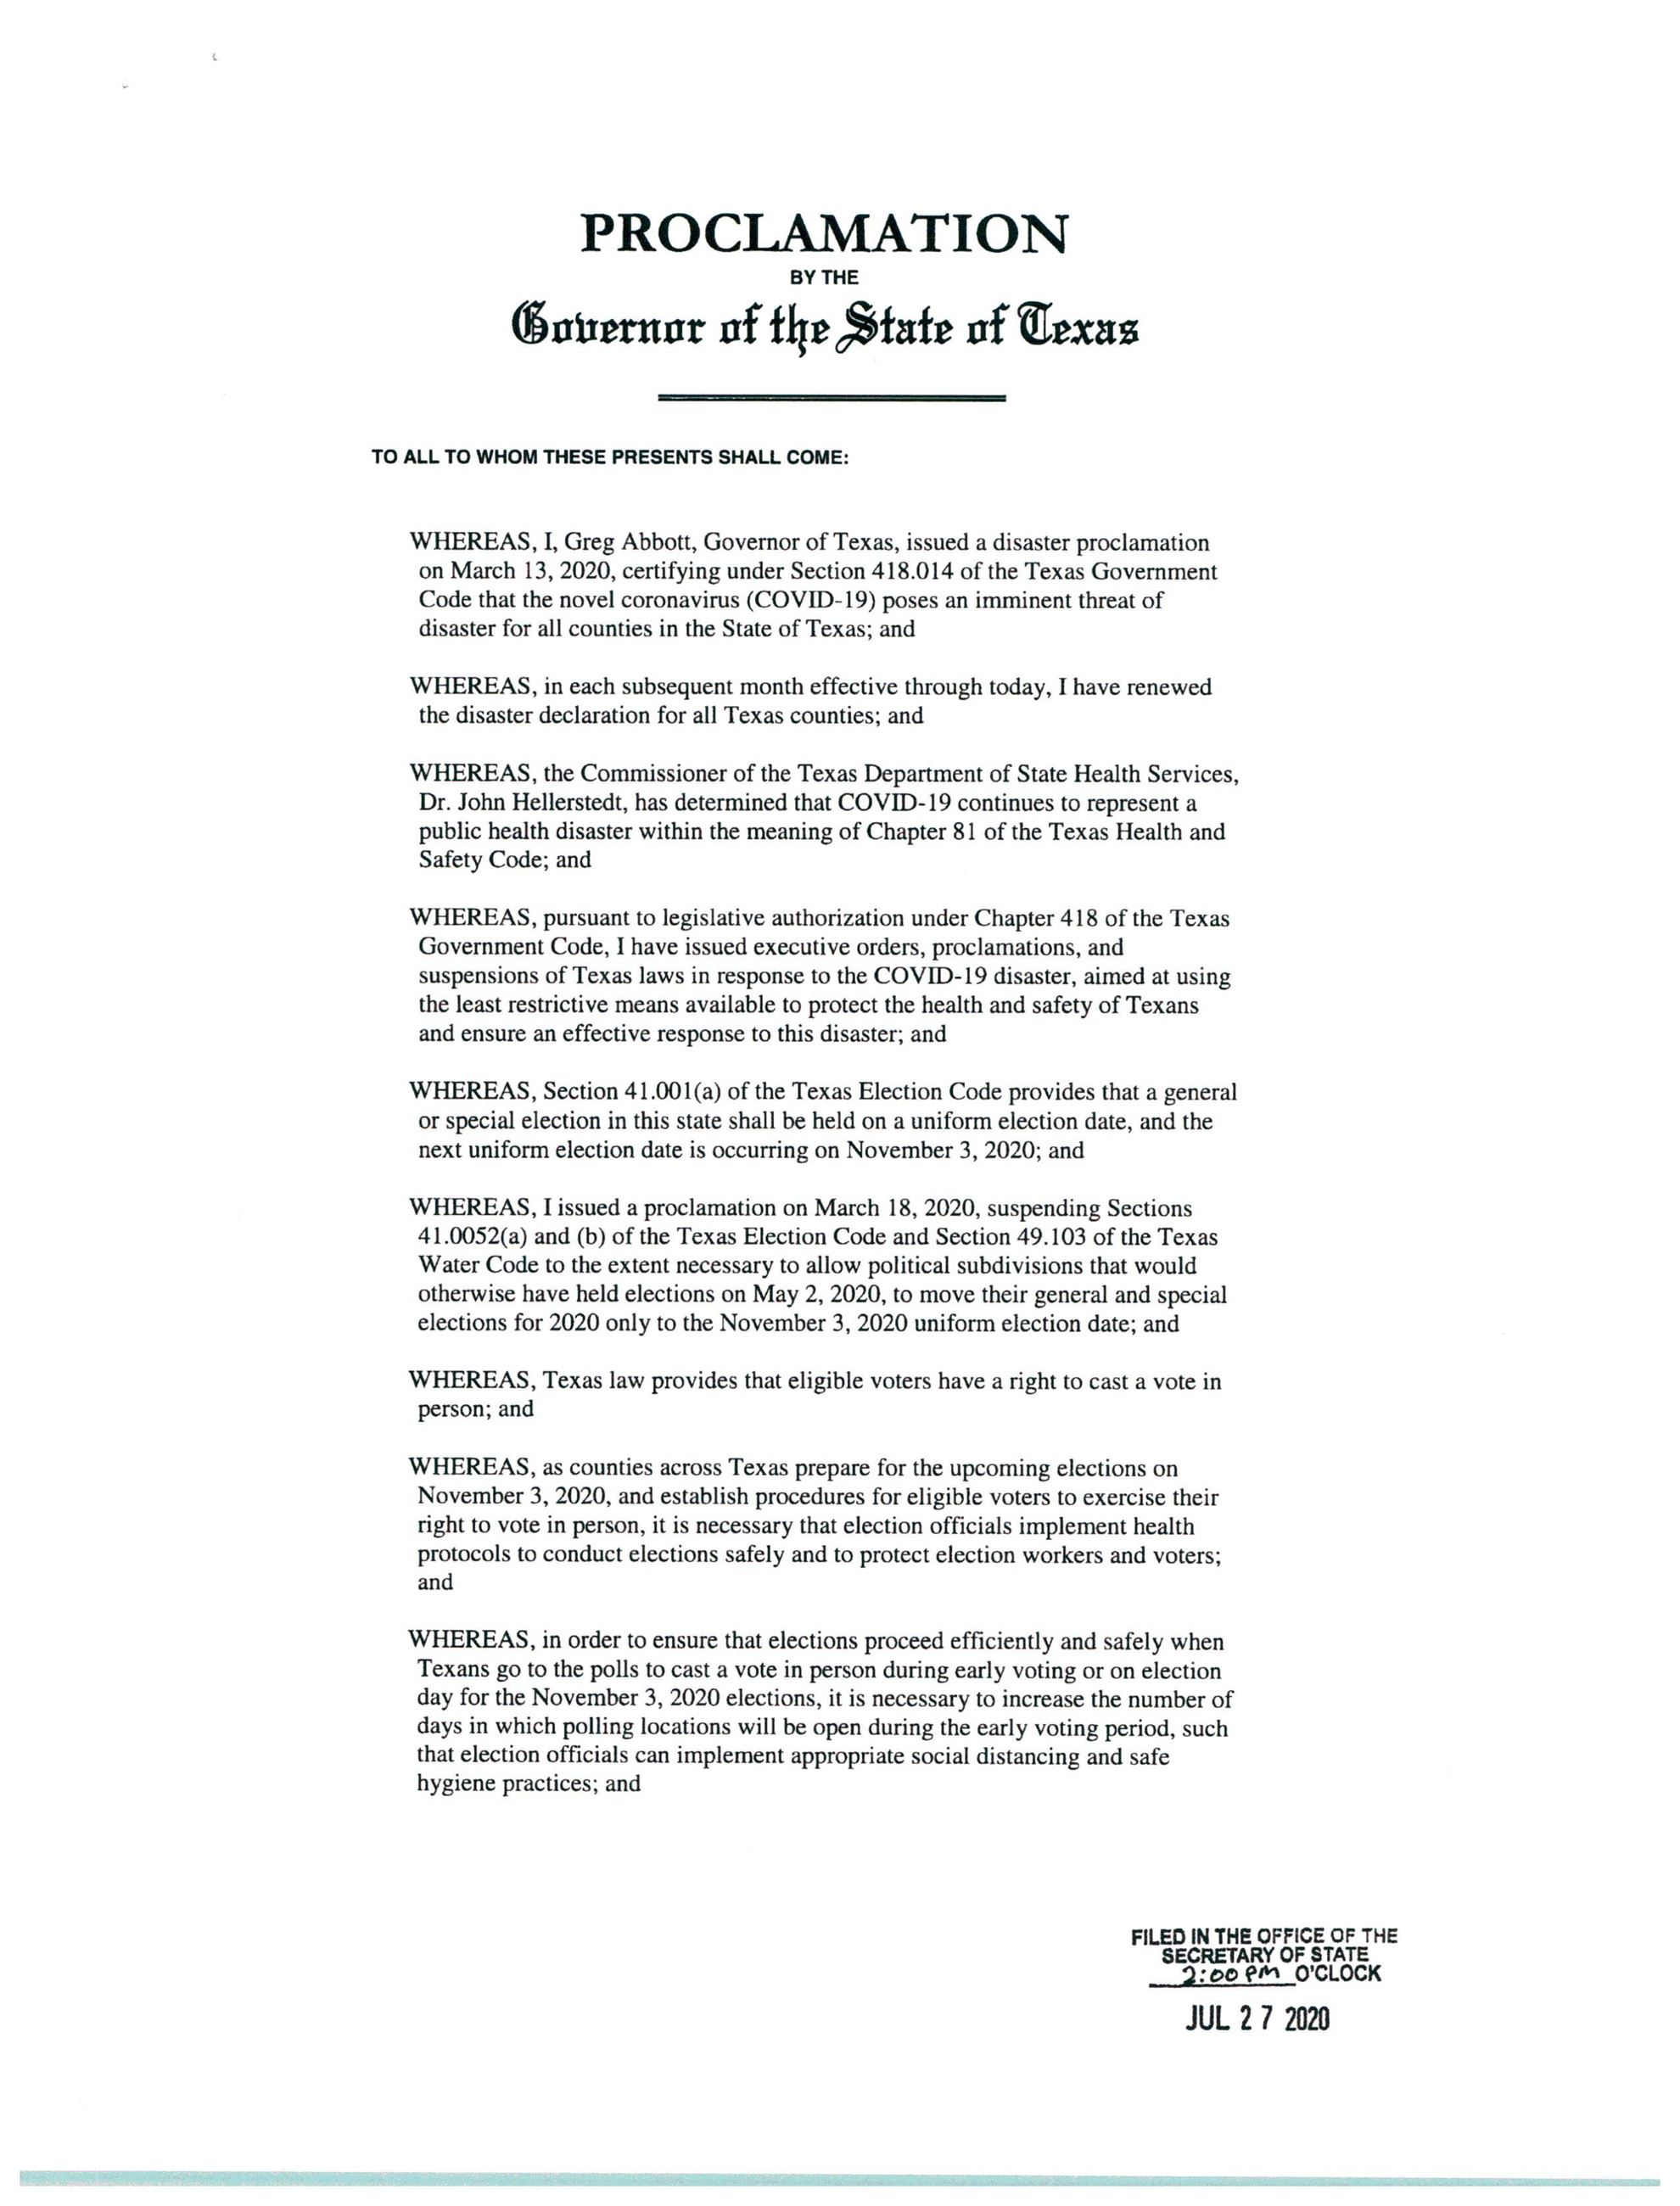 PROCLAMATION BY THE GOVERNOR OF THE STATE OF TEXAS PAGE 2